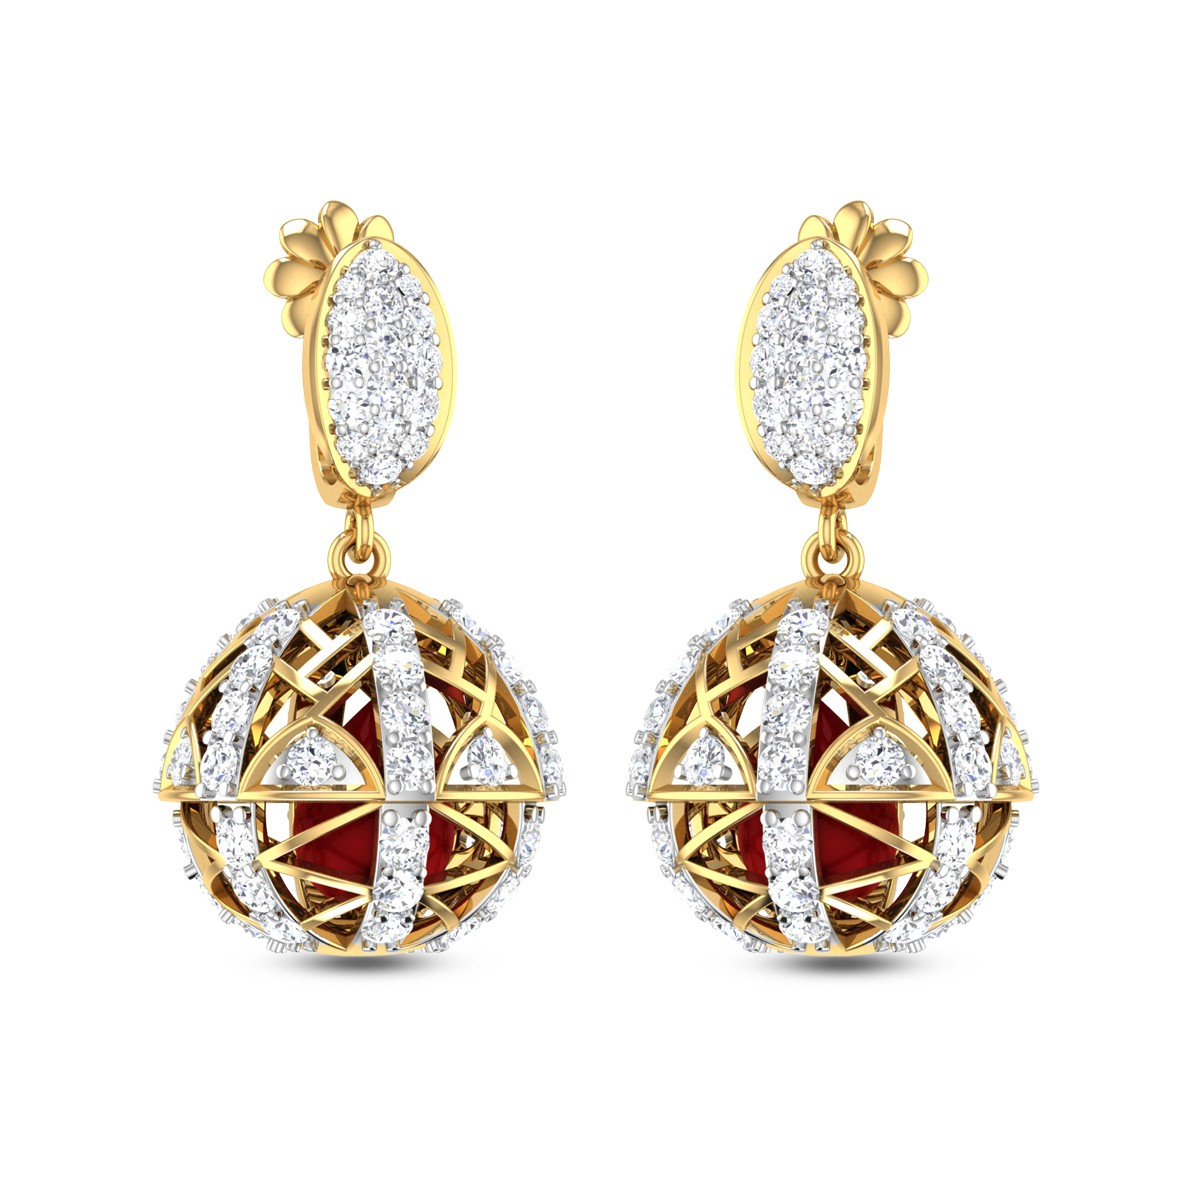 Dropping Balls Diamond Earrings